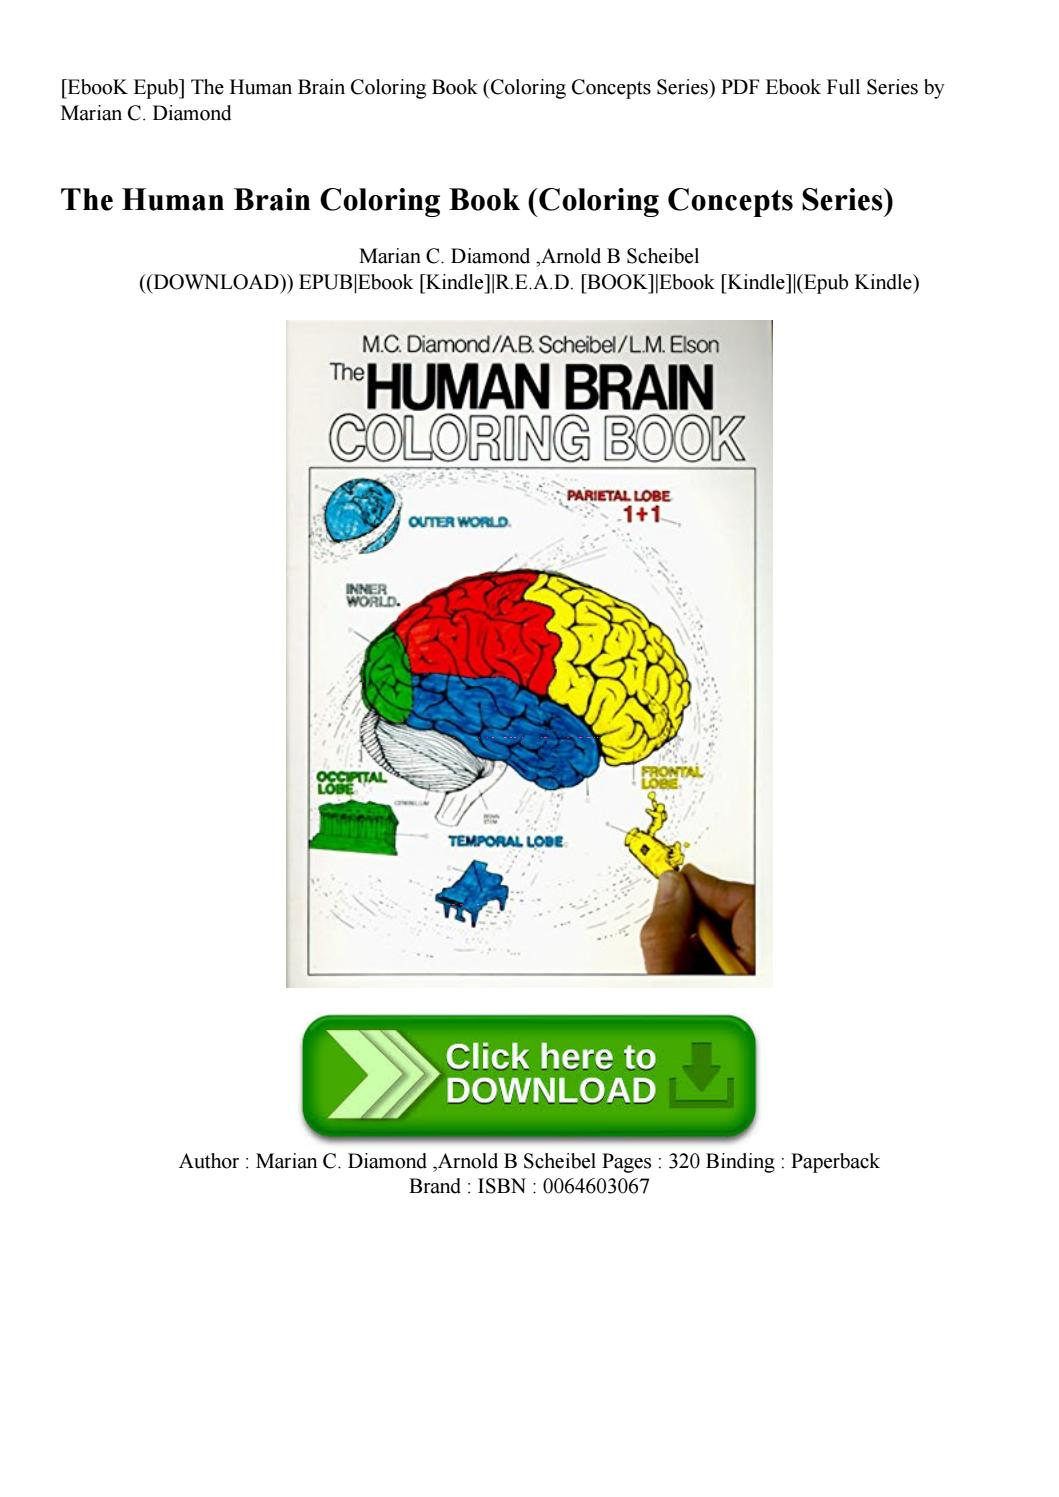 Ebook Epub] The Human Brain Coloring Book (coloring Concepts